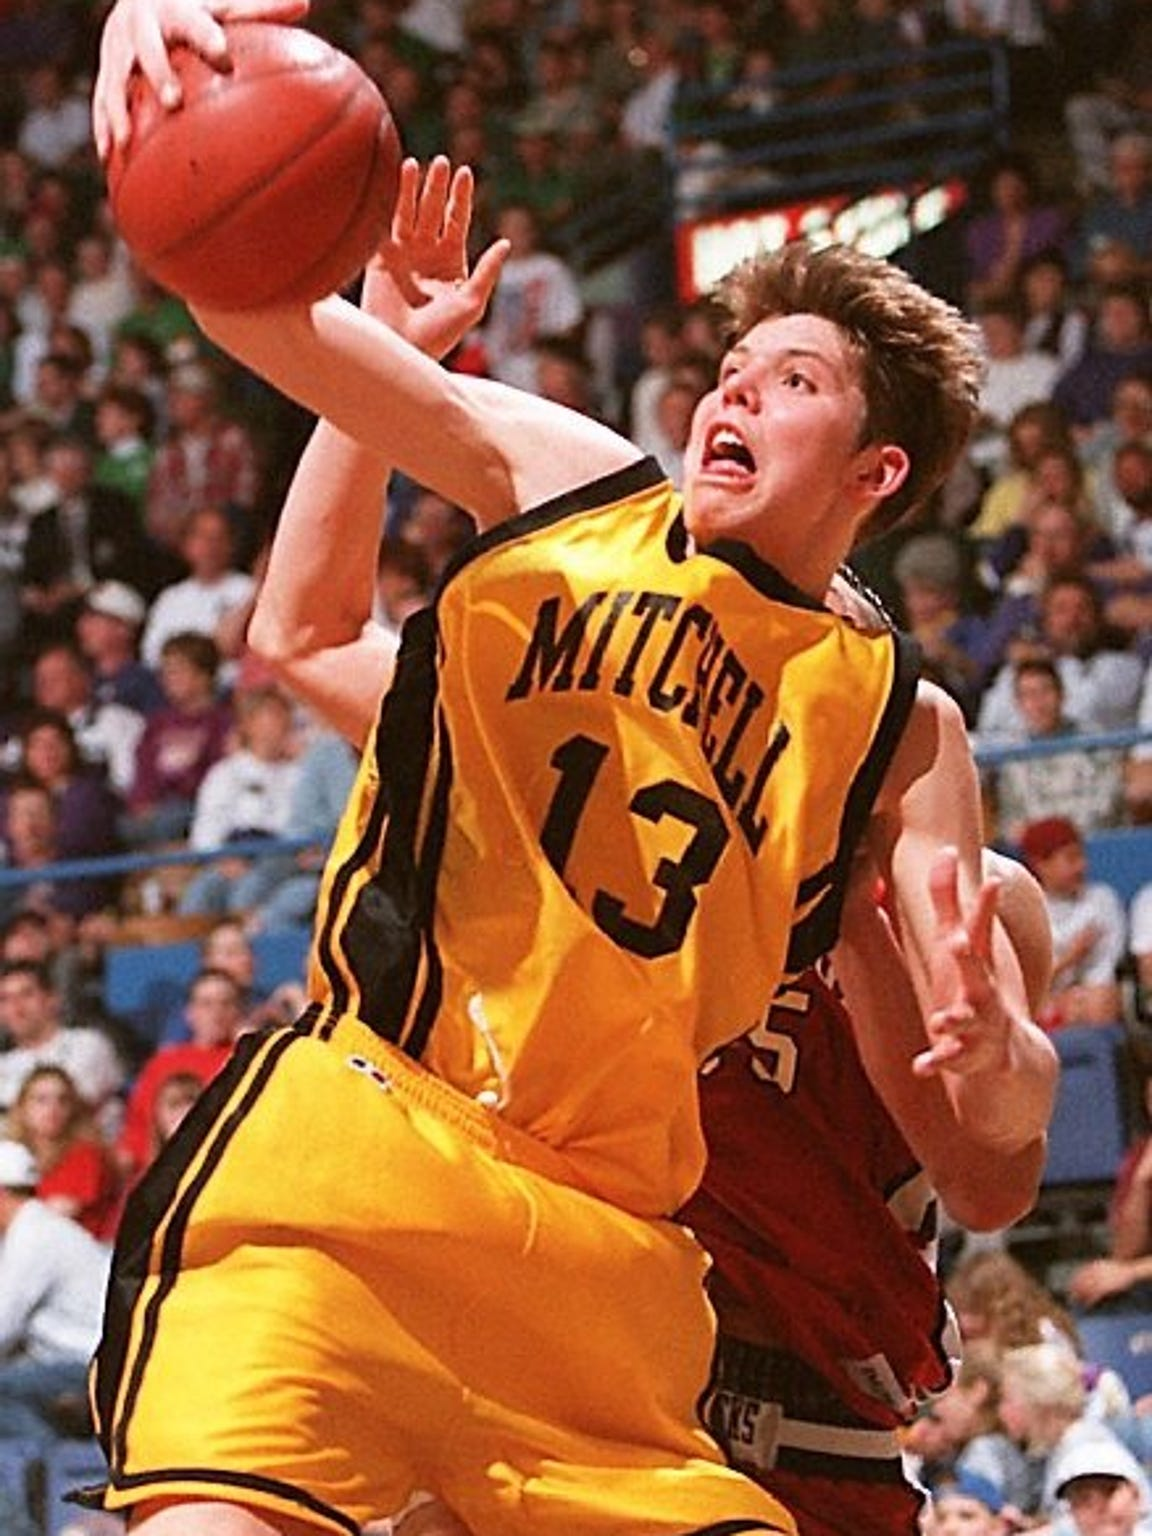 Mitchell standout and eventual NBA veteran Mike Miller was Argus Leader Player of the Year in 1997.